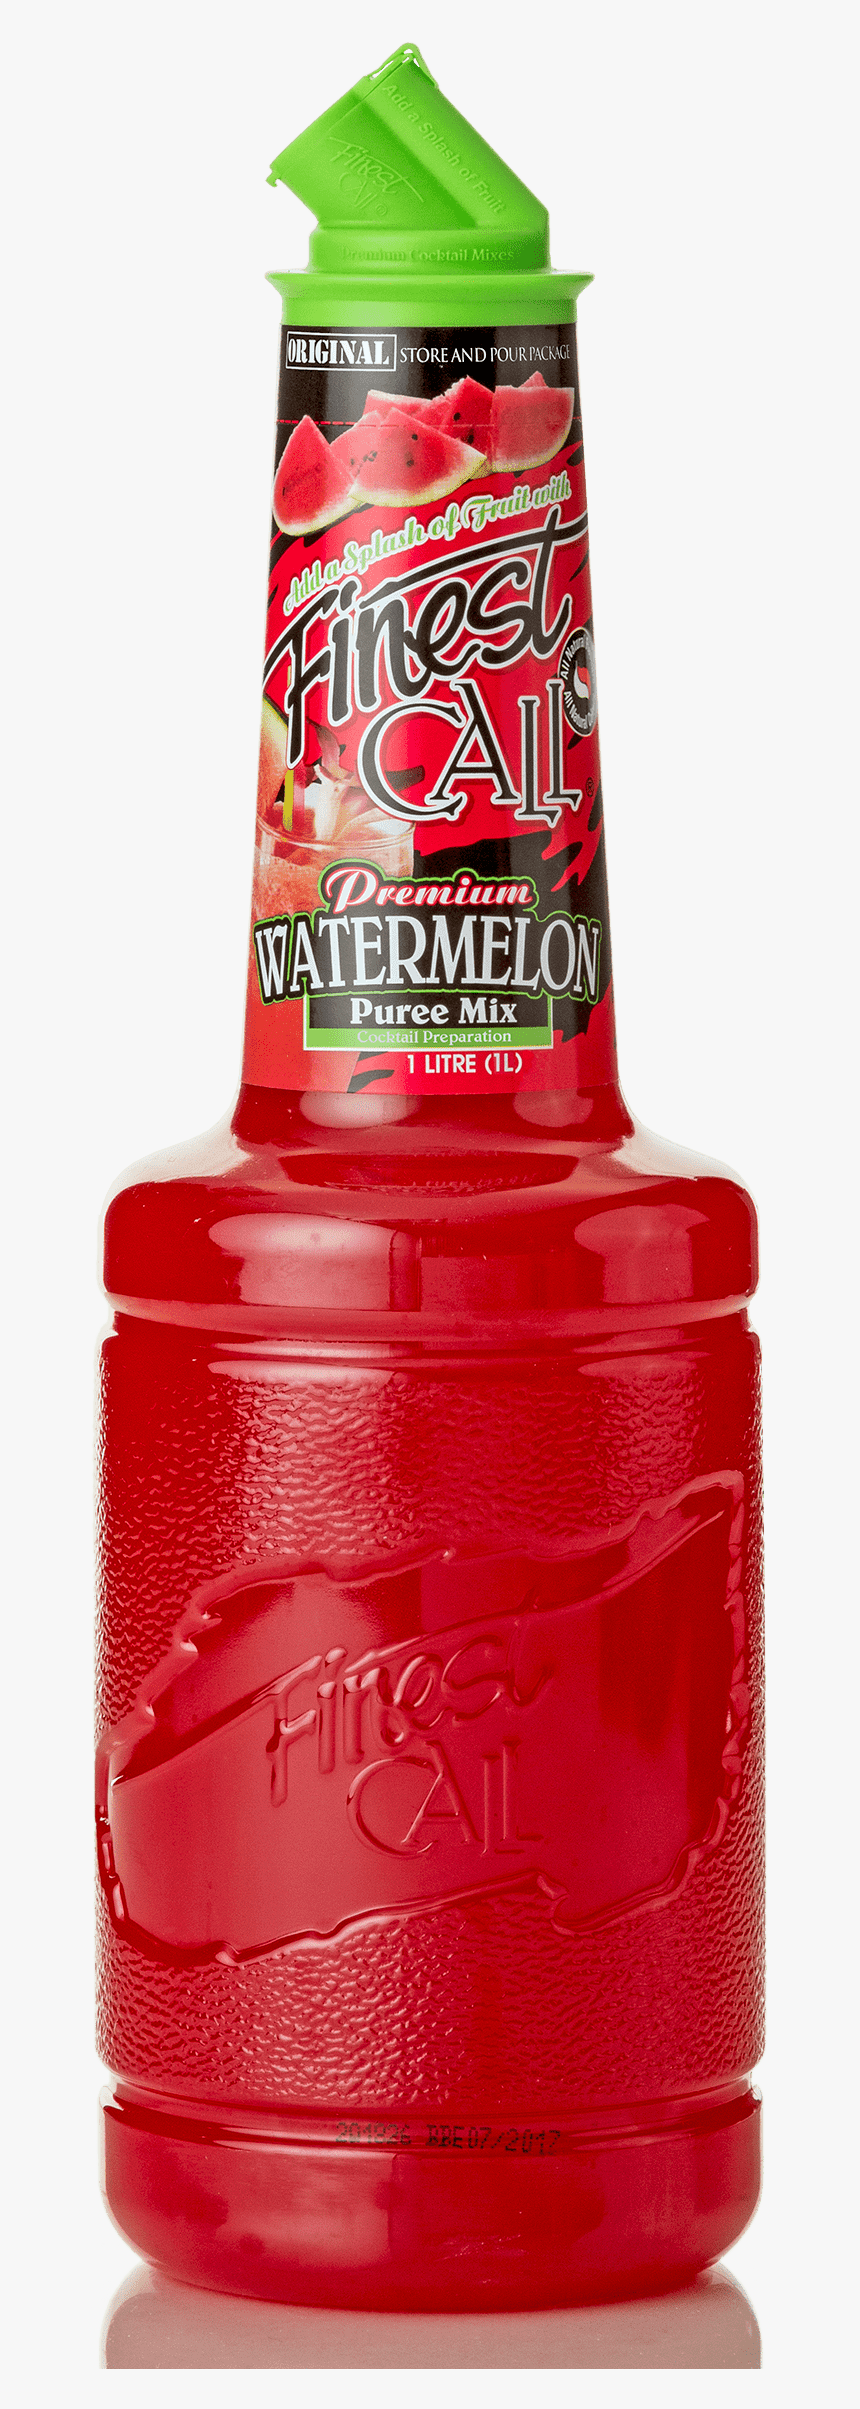 Watermelon Png, Transparent Png, Free Download